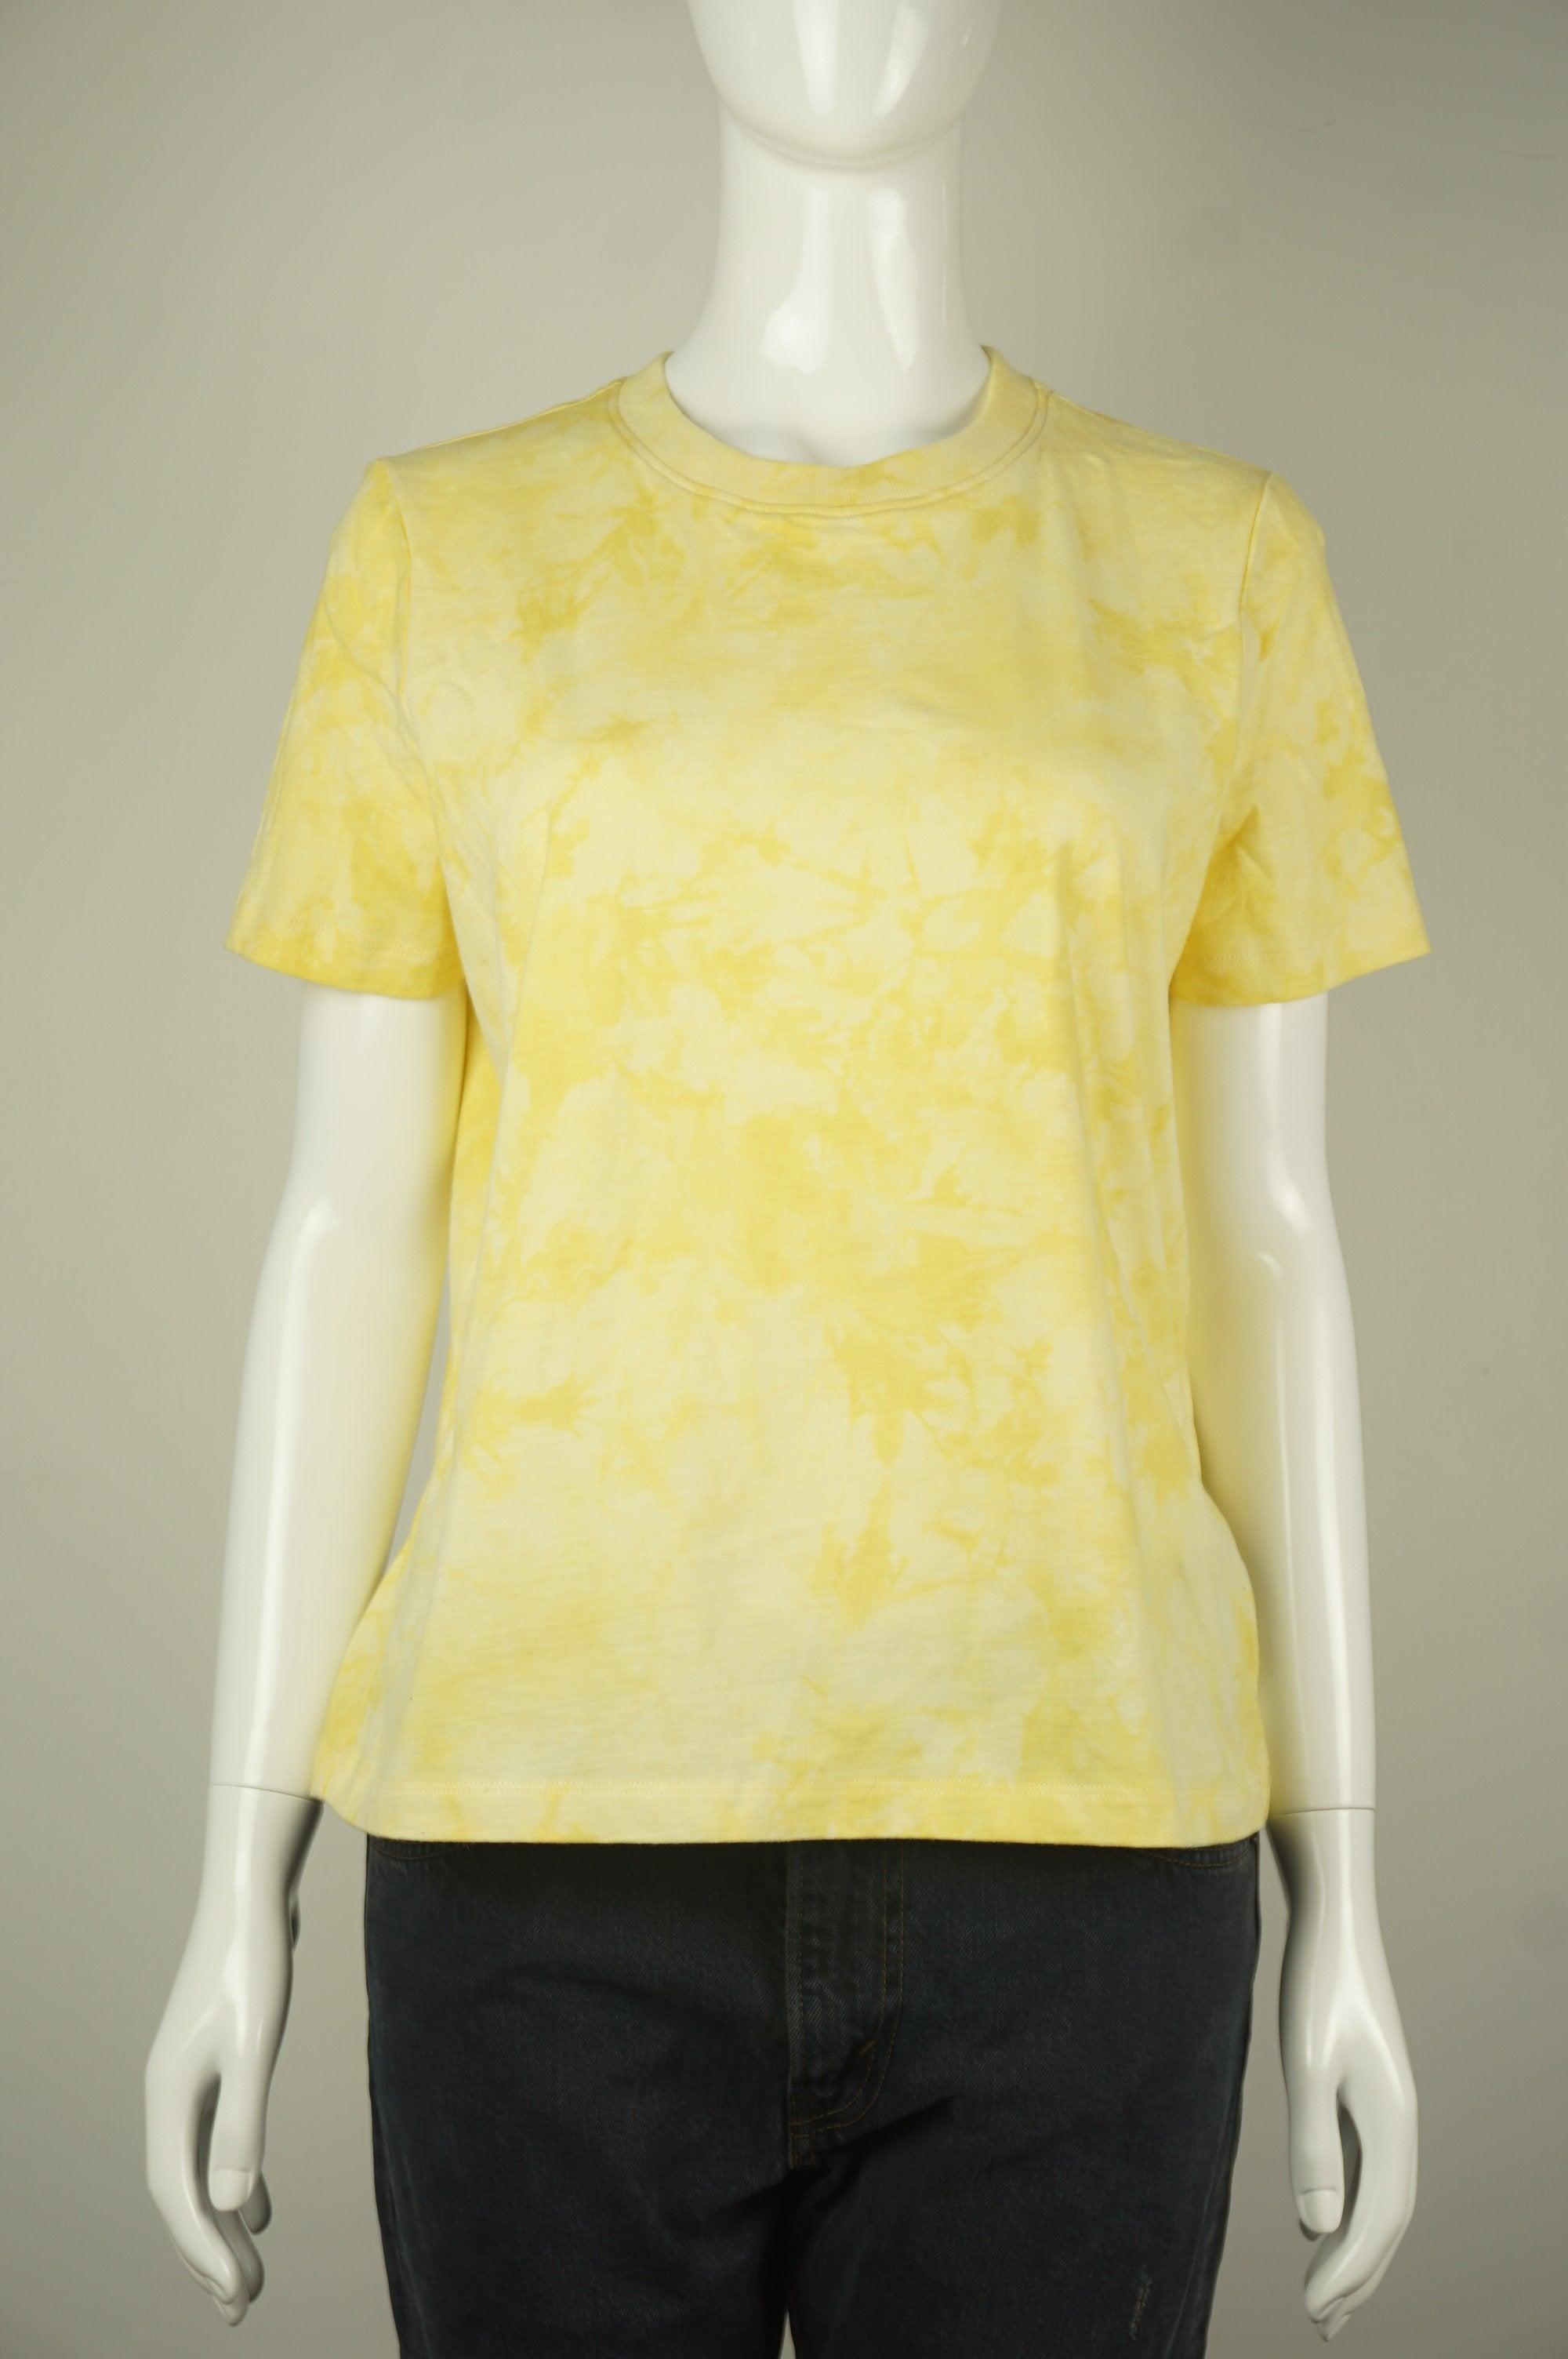 Frank and Oak Hippie's 60s-inspired tie-die yellow short sleeves shirt, What hippies got right, absolutely, in all occasions? Tie-die shirts, of course! This 60s-inspired statement piece is short-sleeved with crewneck, dropped shoulders, and a tie-die design. , Yellow, 100% Cotton. Comfortable and Breathable Fabric. , women's Tops, women's Yellow Tops, Frank and Oak women's Tops, Frank&Oak tie dye shirt, women's tie dye shirt, women's tops